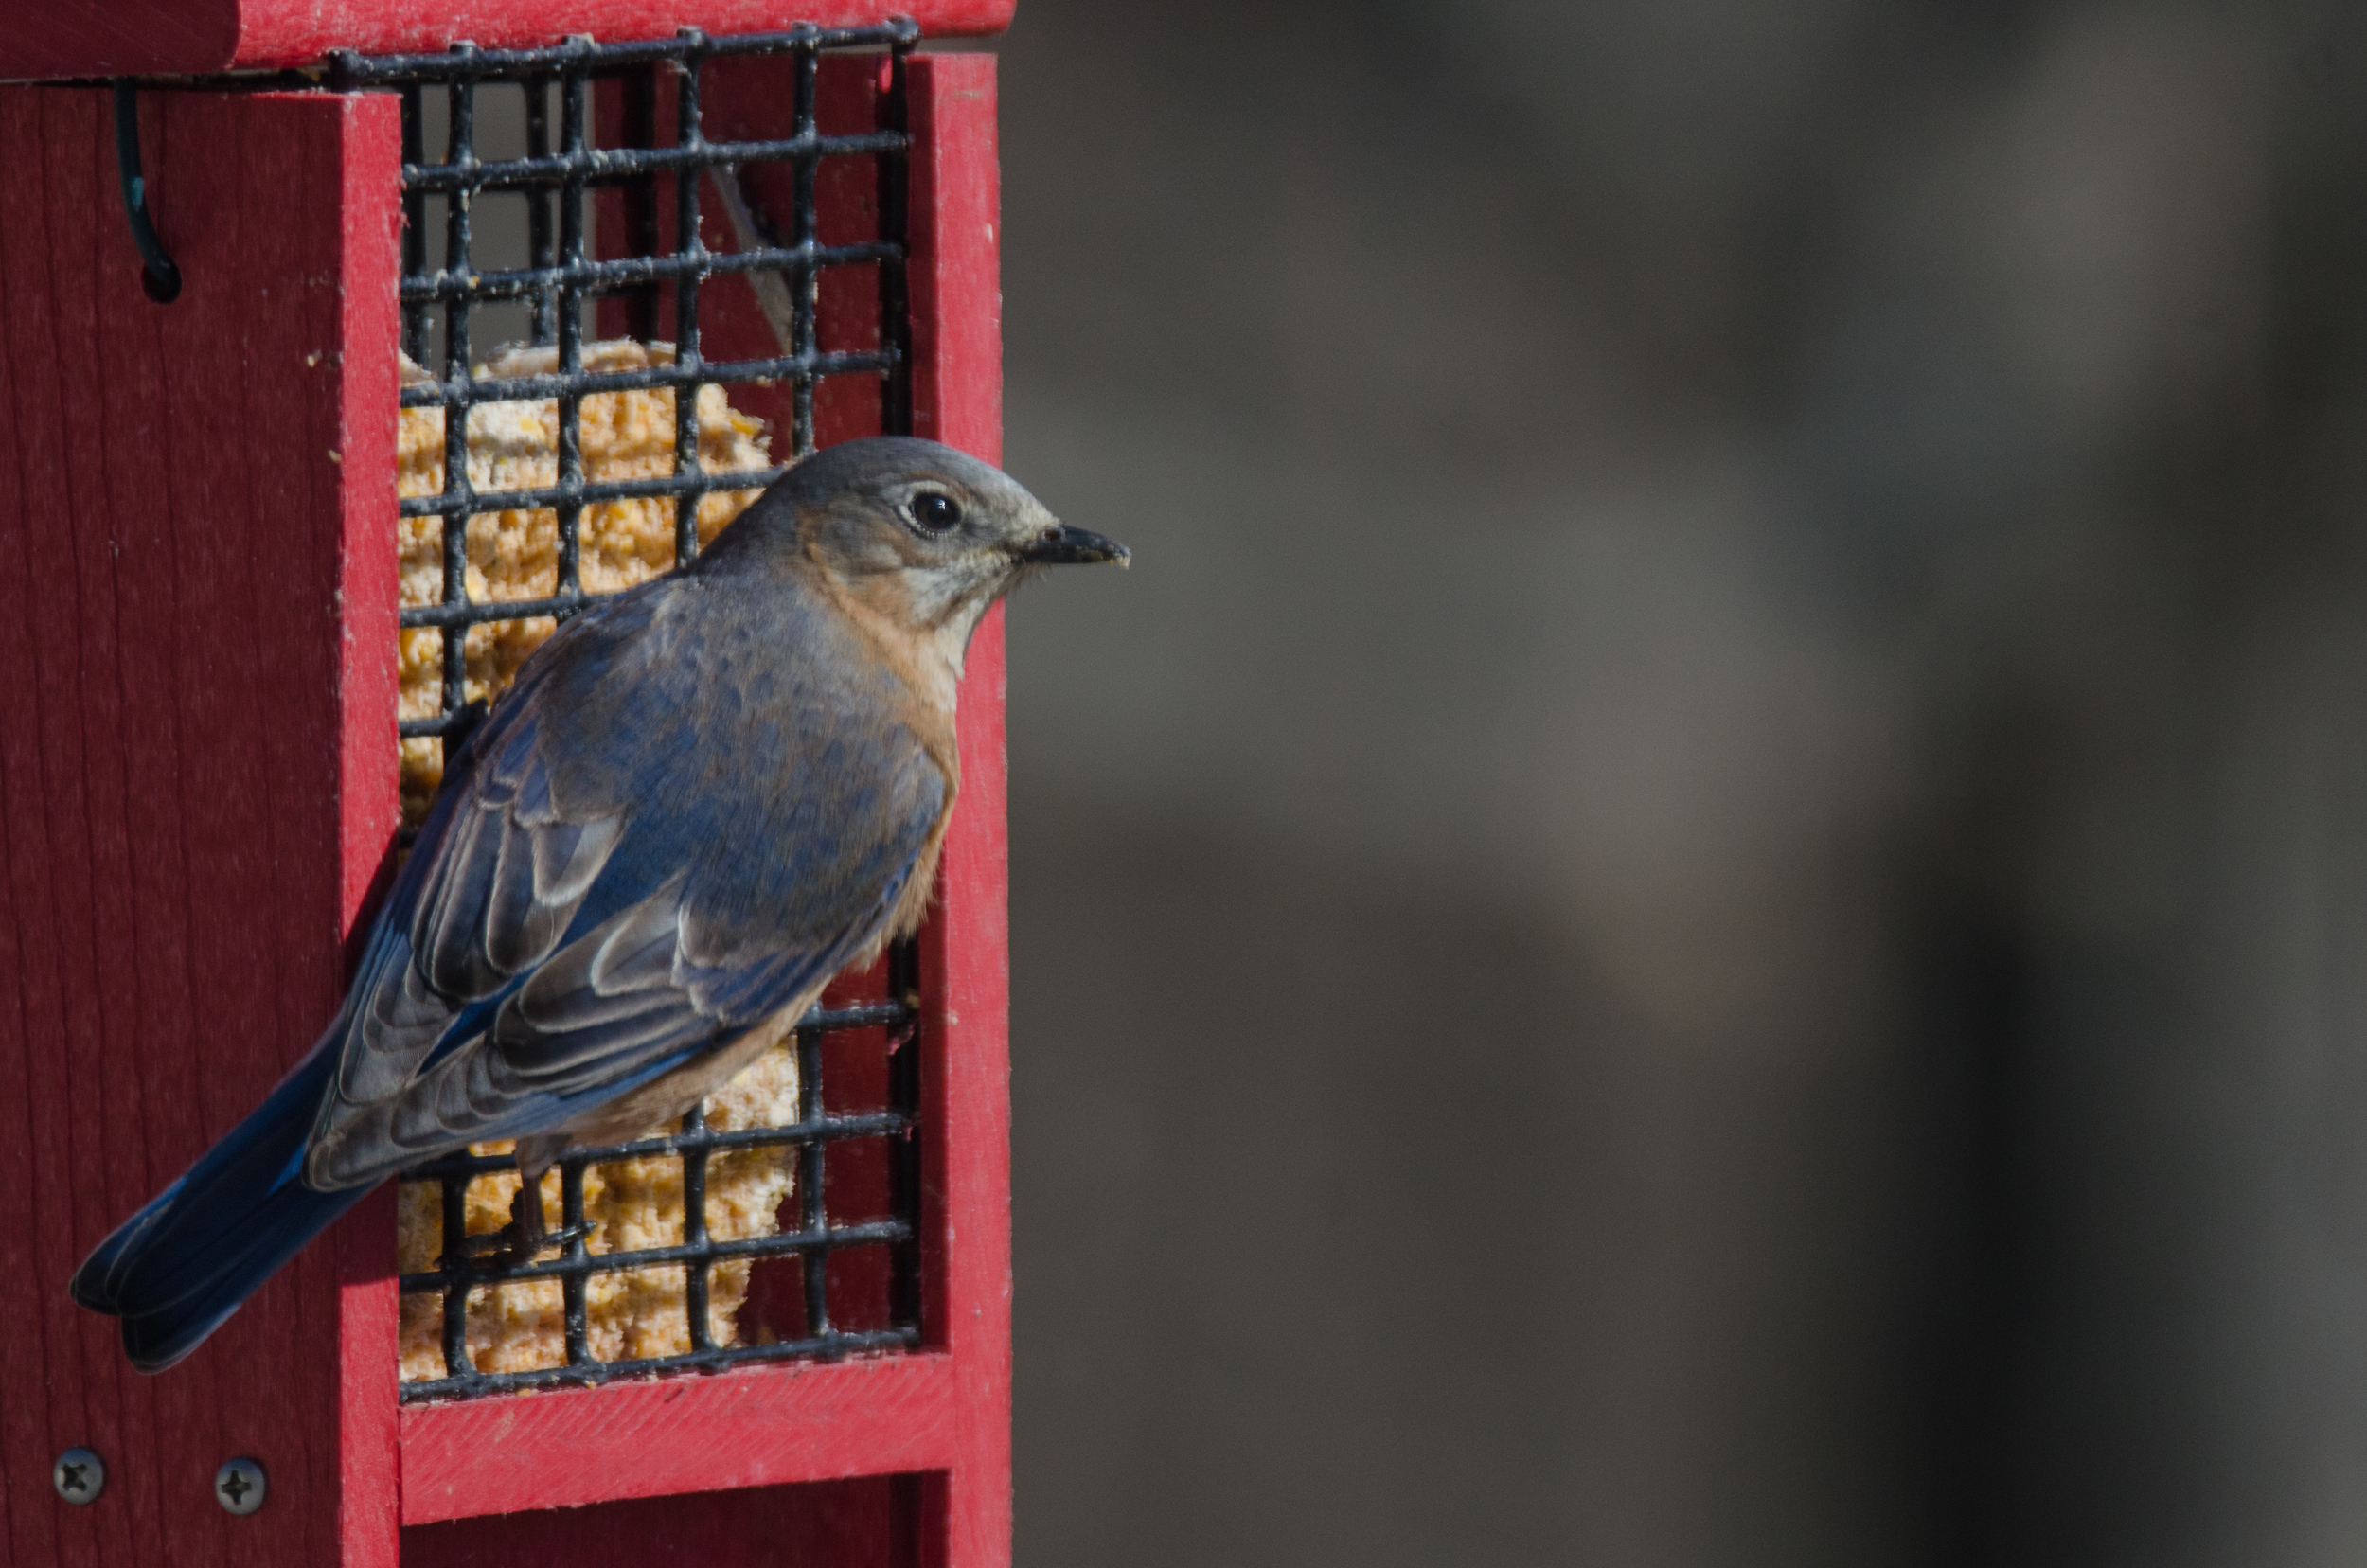 Female Eastern Bluebird  Nikon D7000 ISO 400 450 mm f/6.0 1/1600